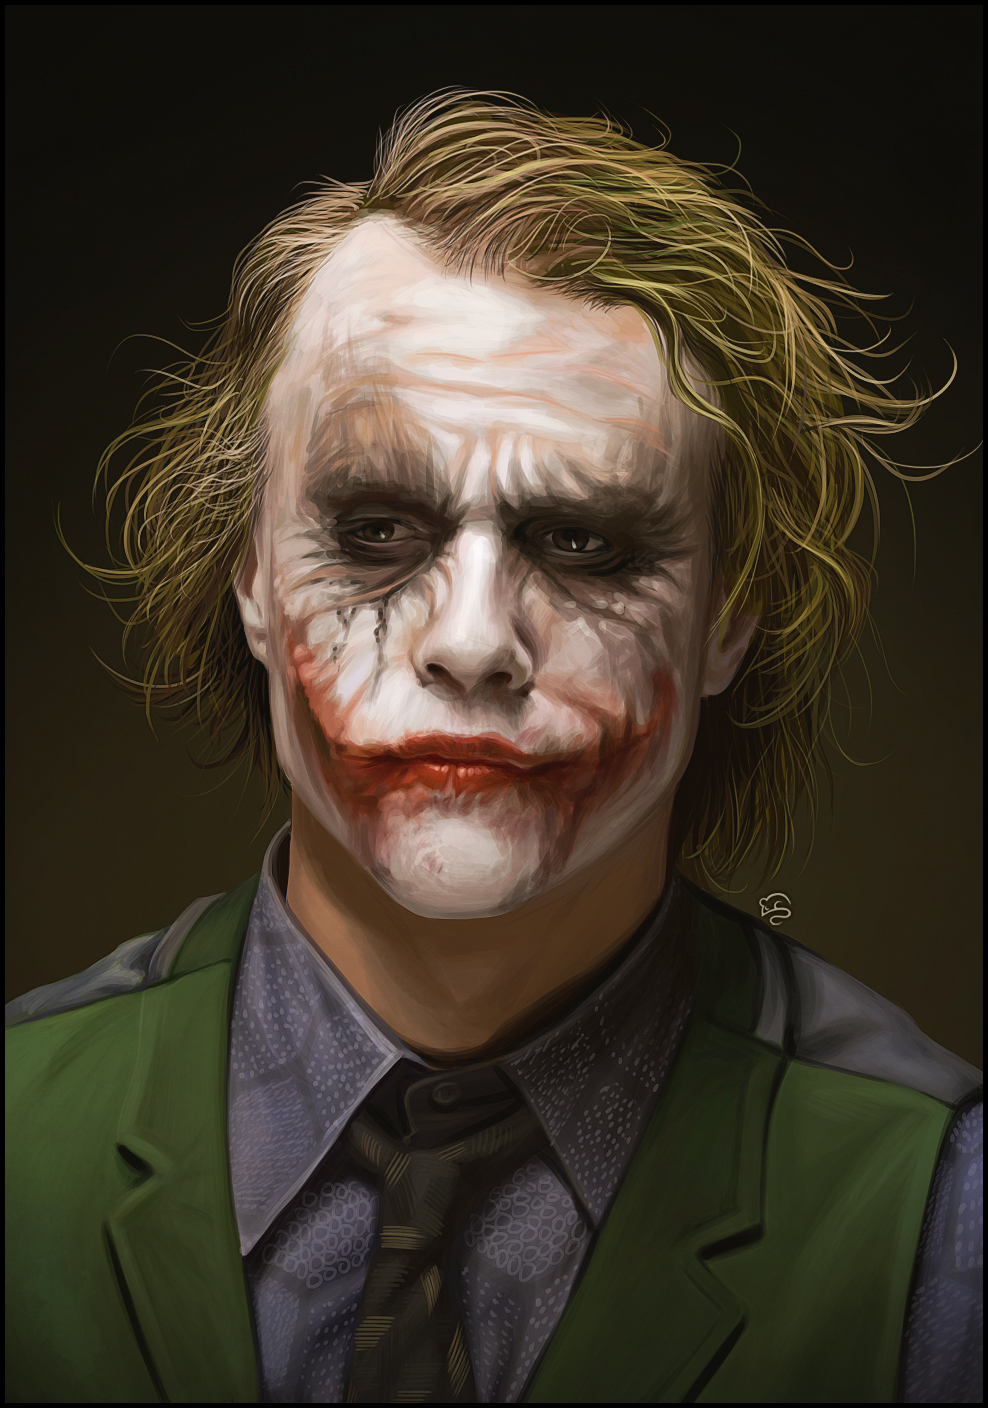 Heath Ledger Joker Wallpaper - wallpaper